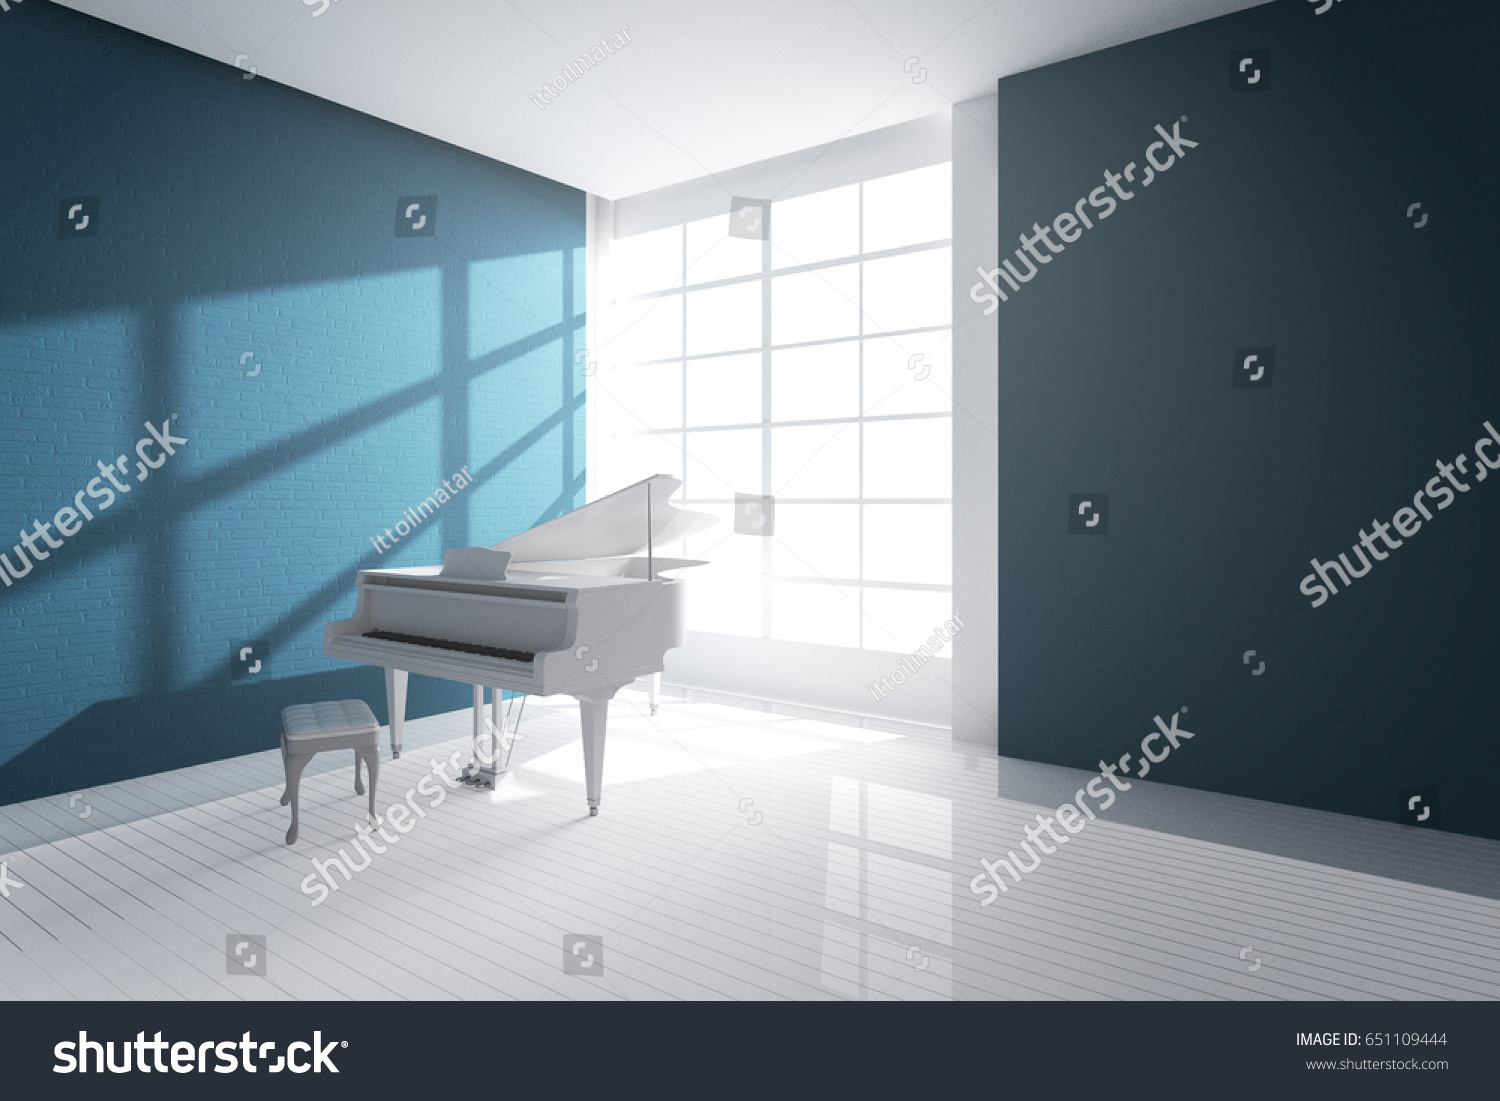 3 D Rendering Illustration White Room White Stock Illustration ...